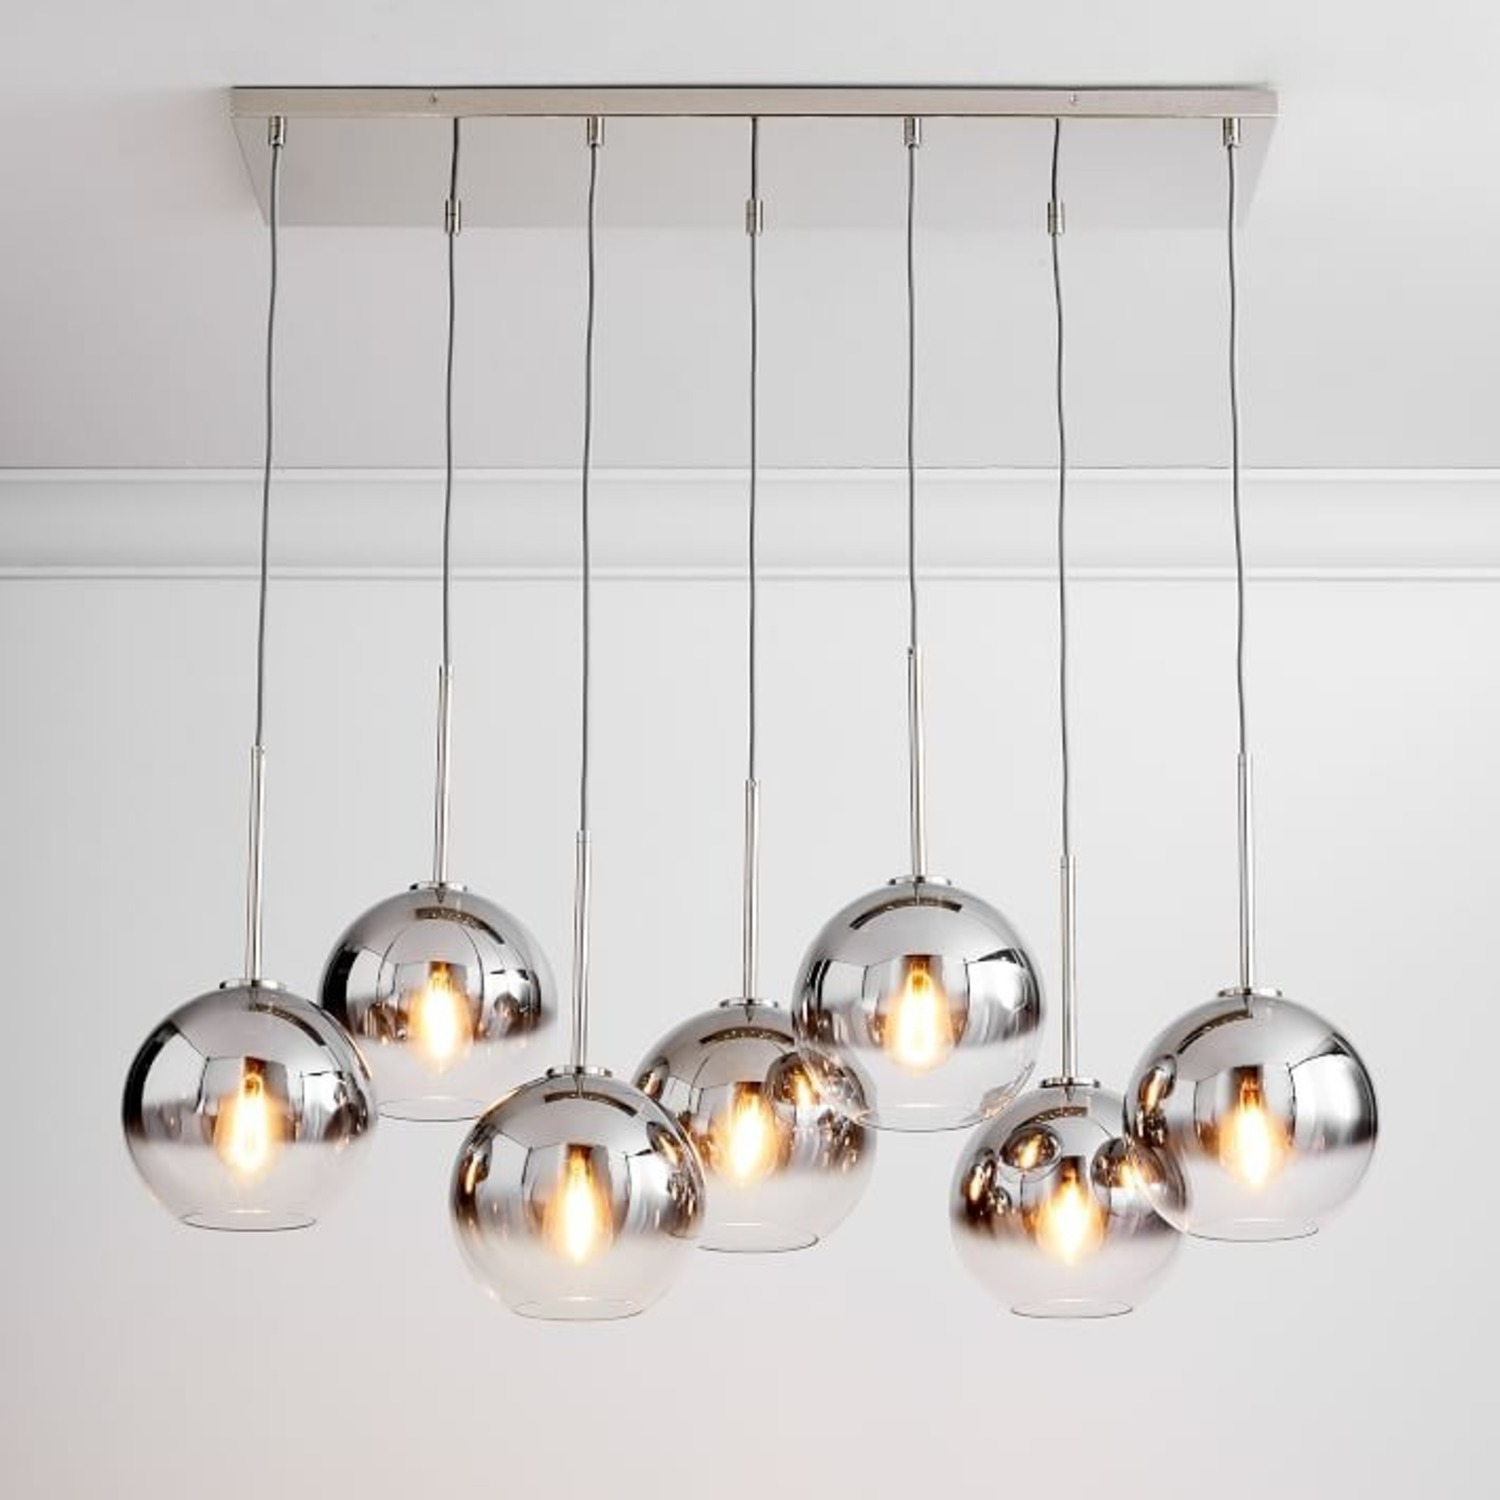 West Elm Sculptural 7-Light Chandelier - image-2